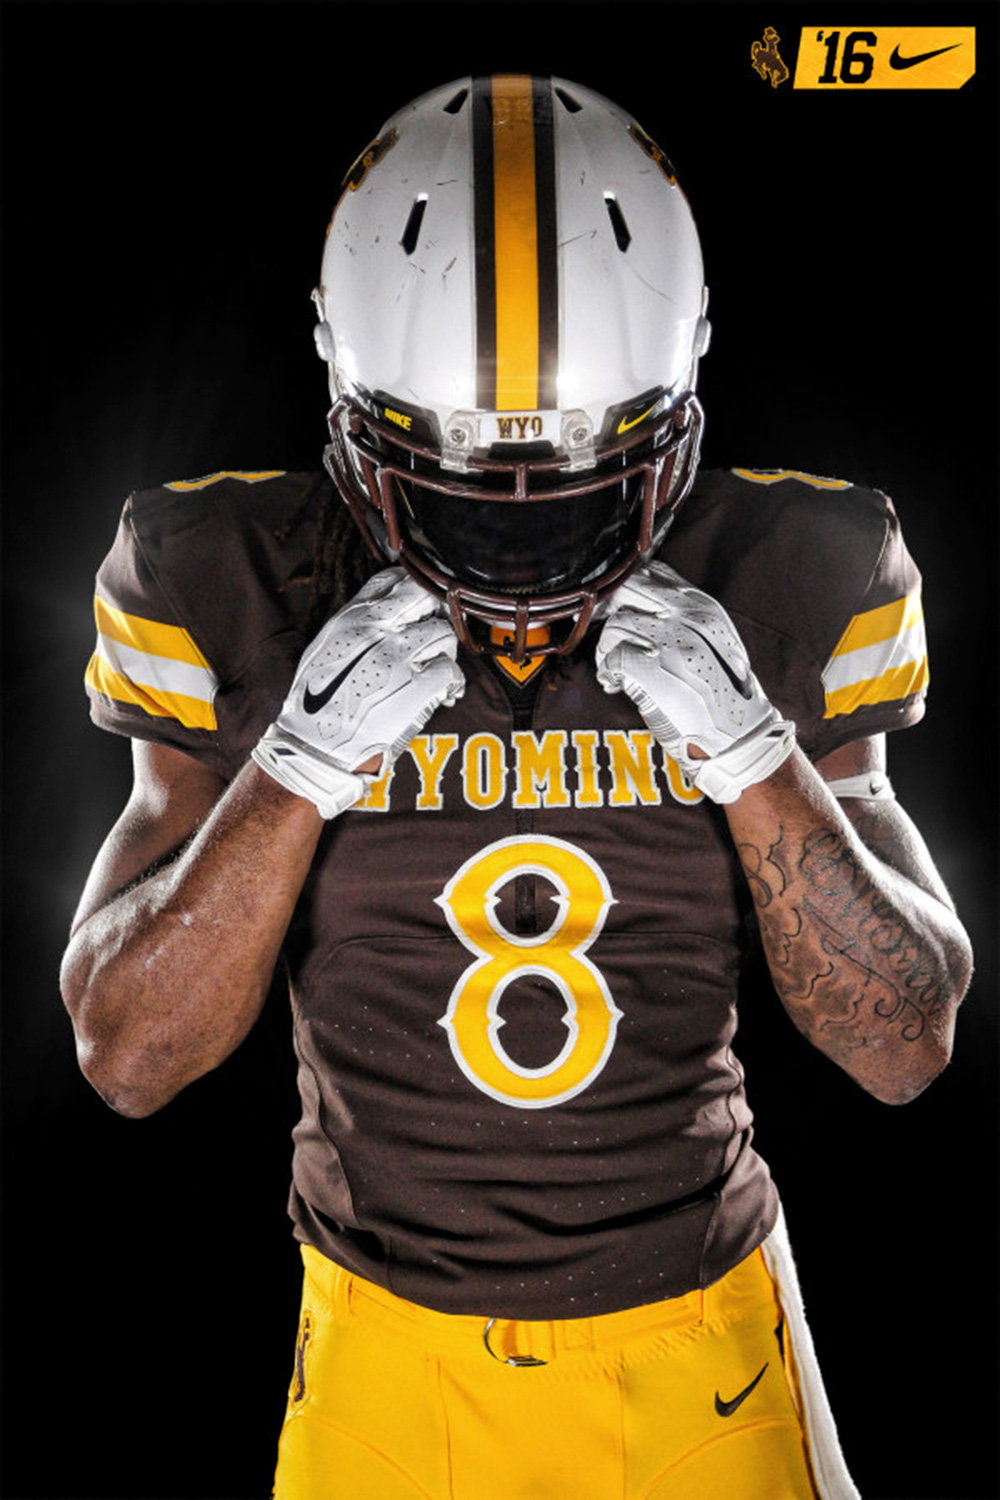 buy online 9ada3 bc8aa Wyoming unveils Nike Mach Speed uniforms for 2016 season ...